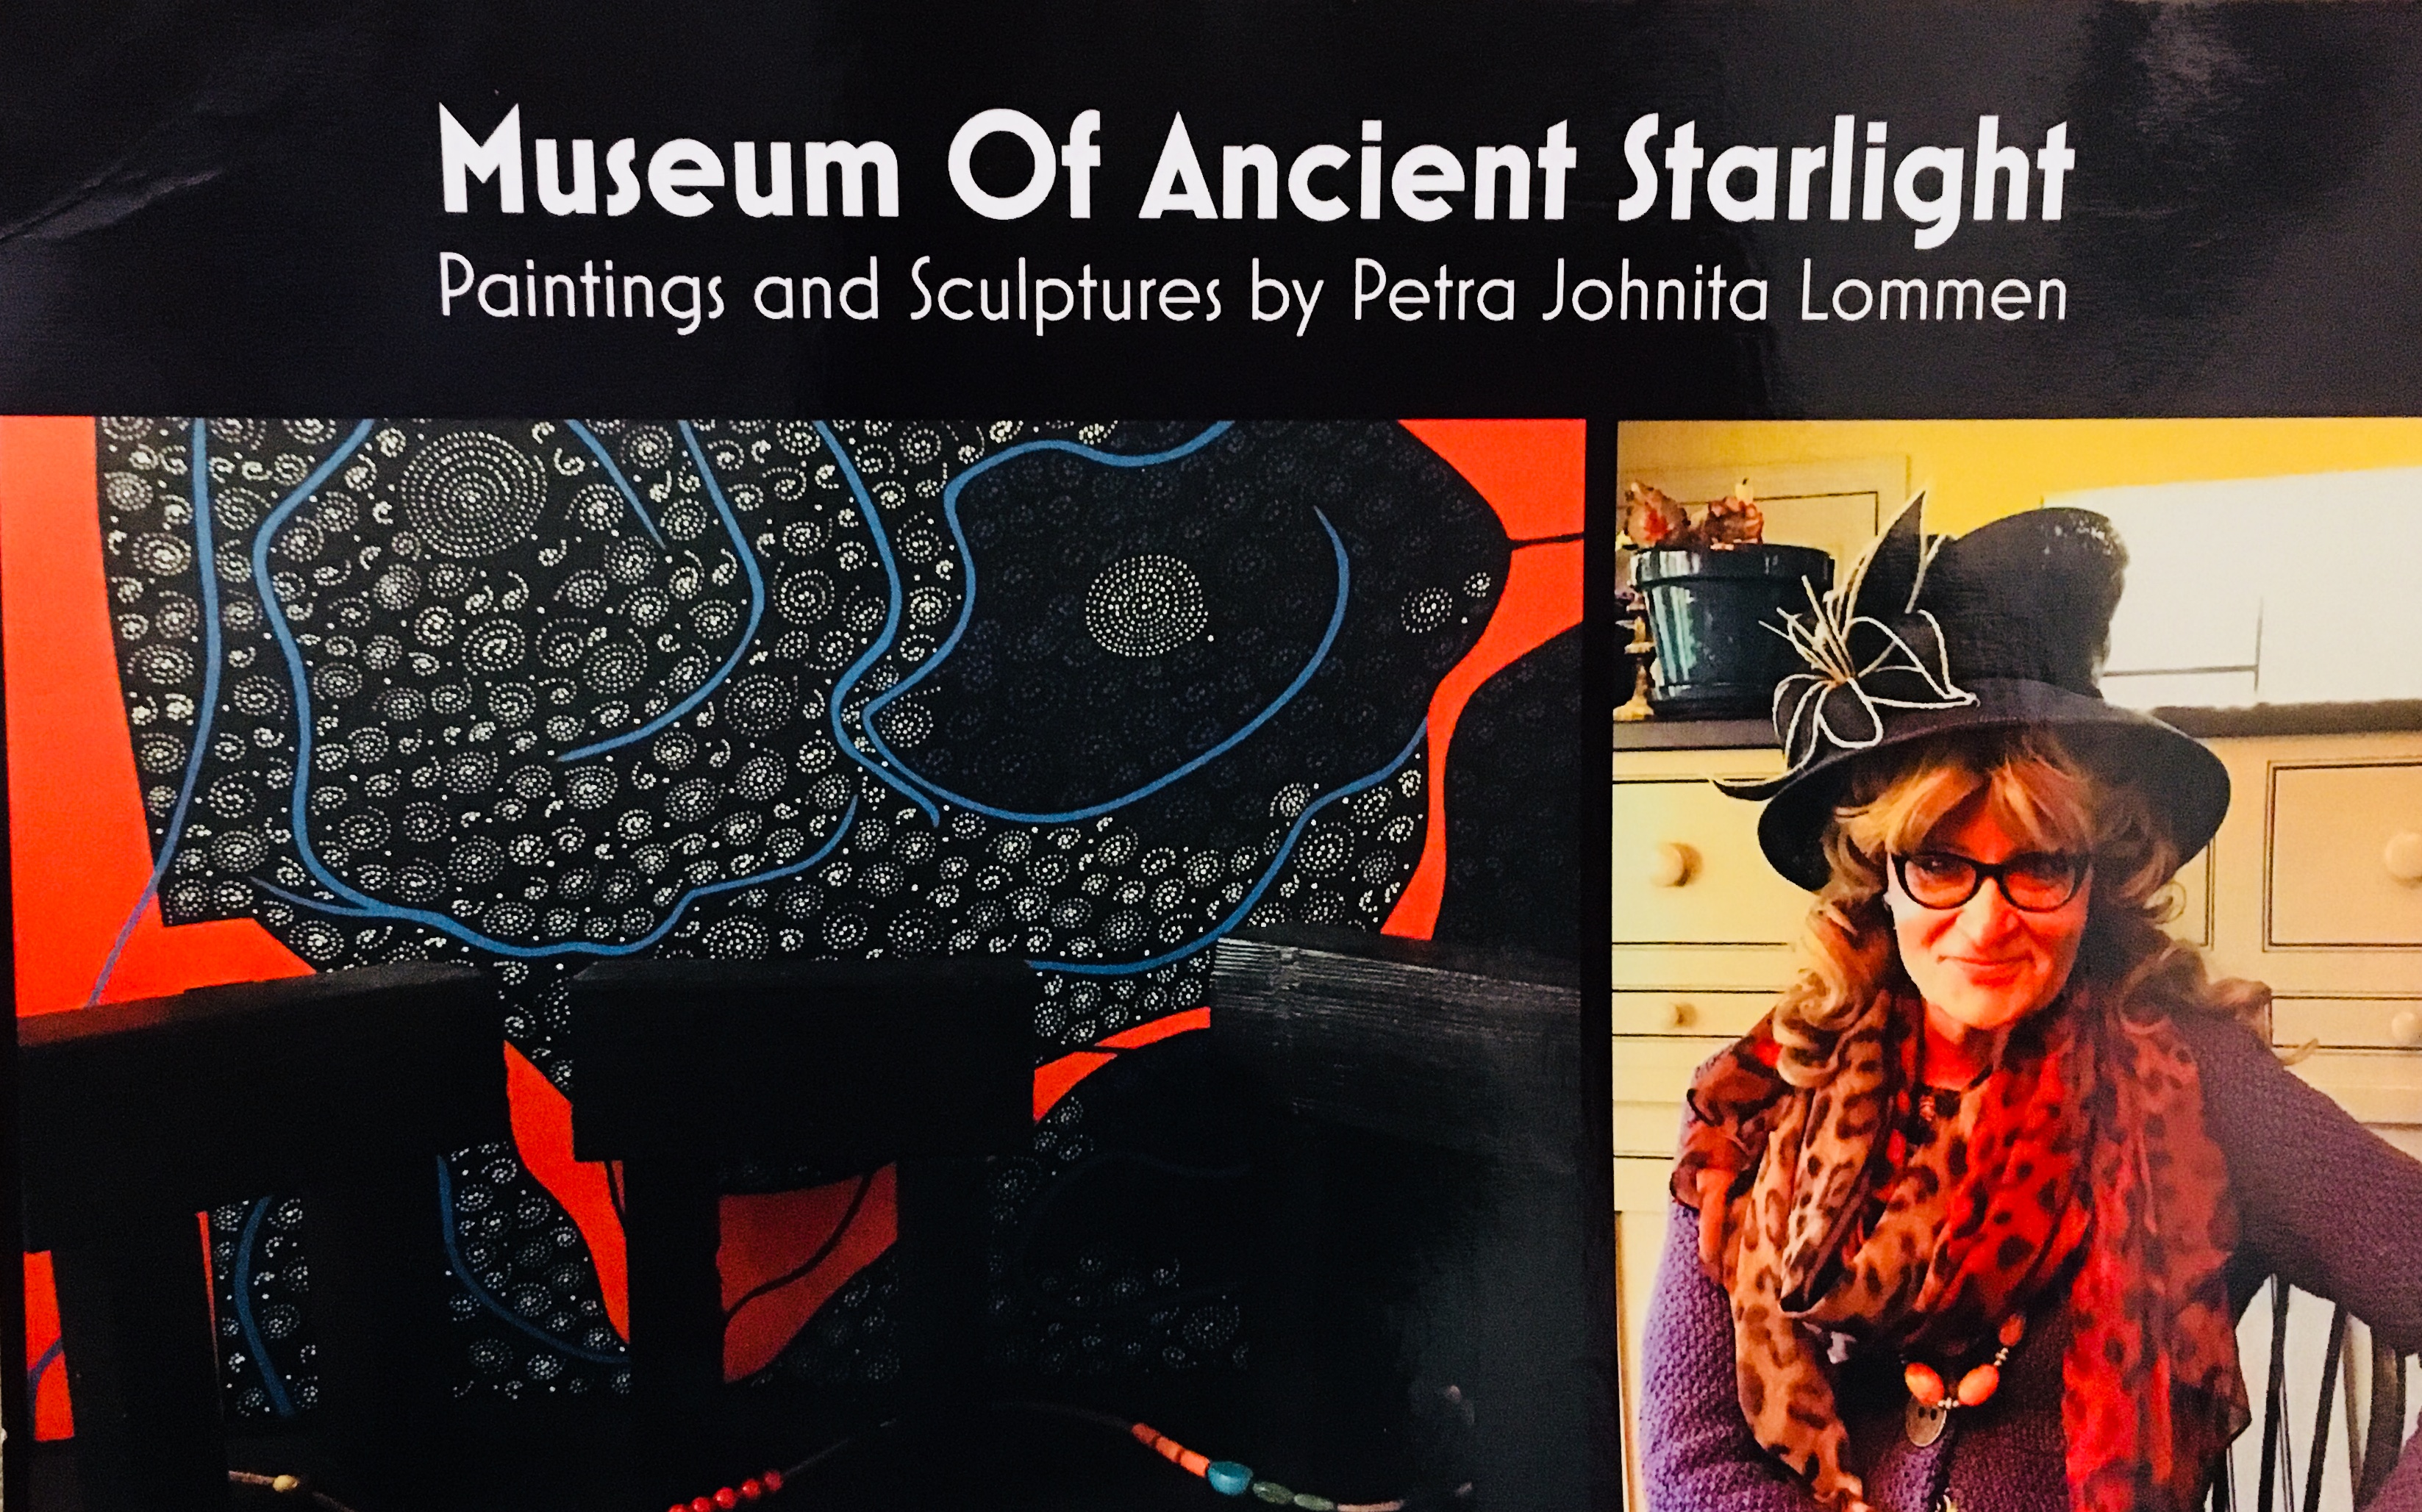 Museum Of Ancient Starlight: Paintings and Sculptures by Petra Lommen